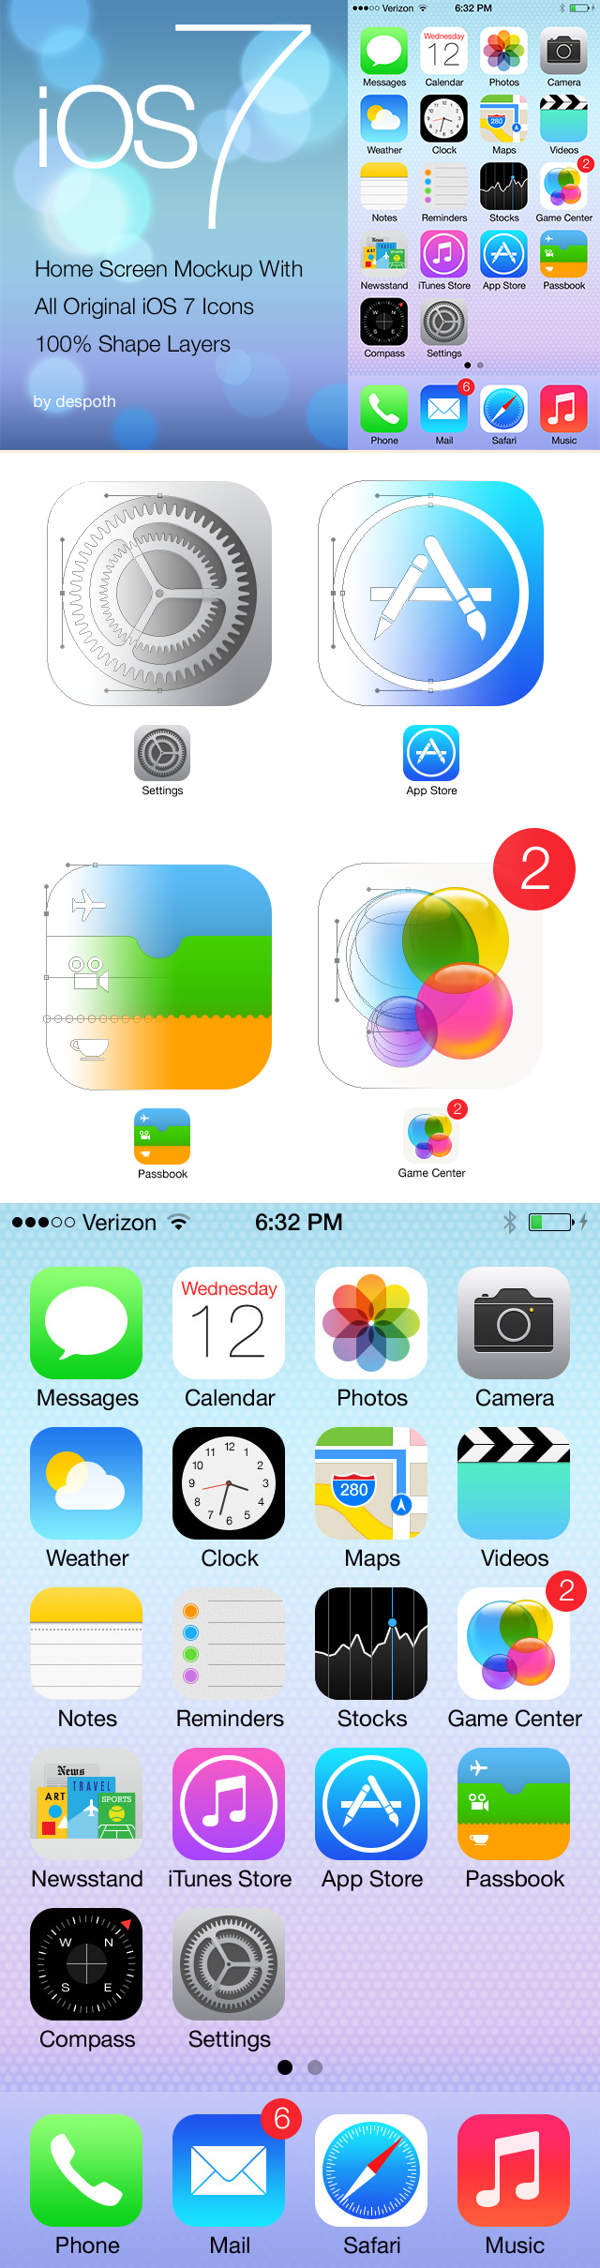 Download iOS 7 Home Screen With Icons Layers Mockup Free